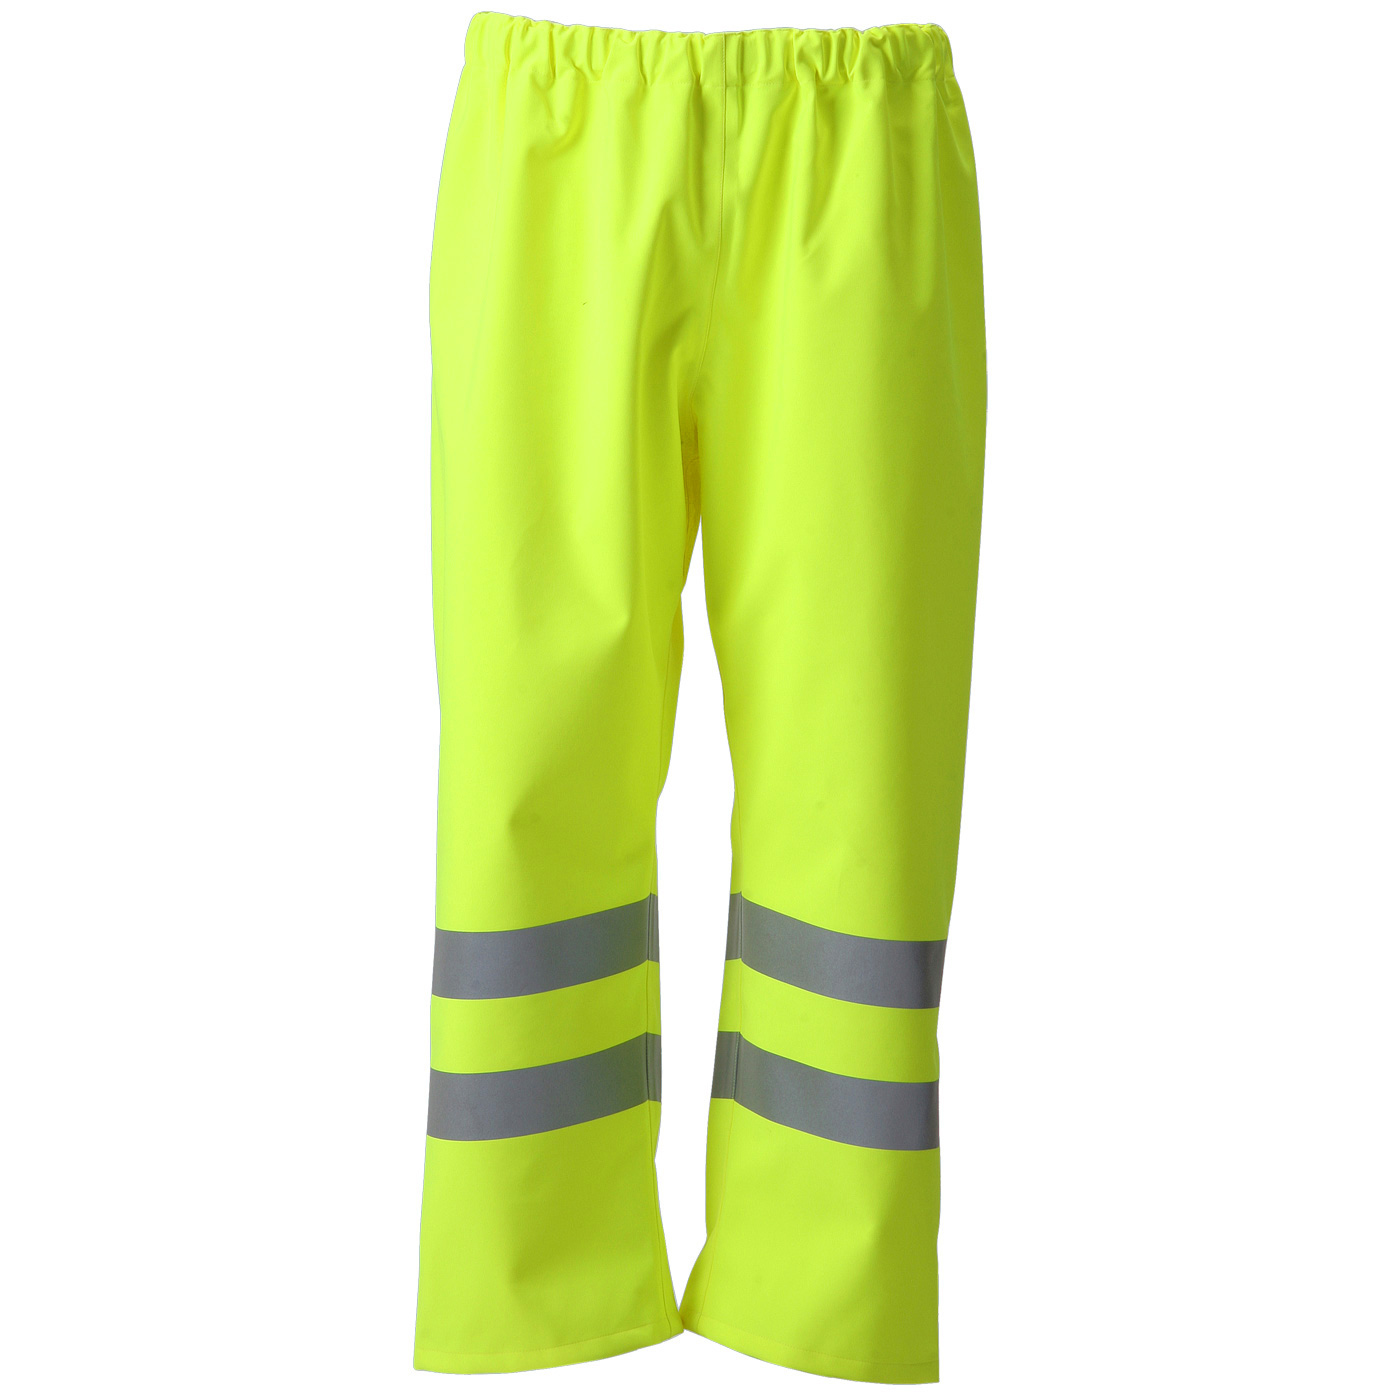 BSeen Gore-Tex Over Trousers Foul Weather M Saturn Yellow Ref GTHV160SYM Up to 3 Day Leadtime